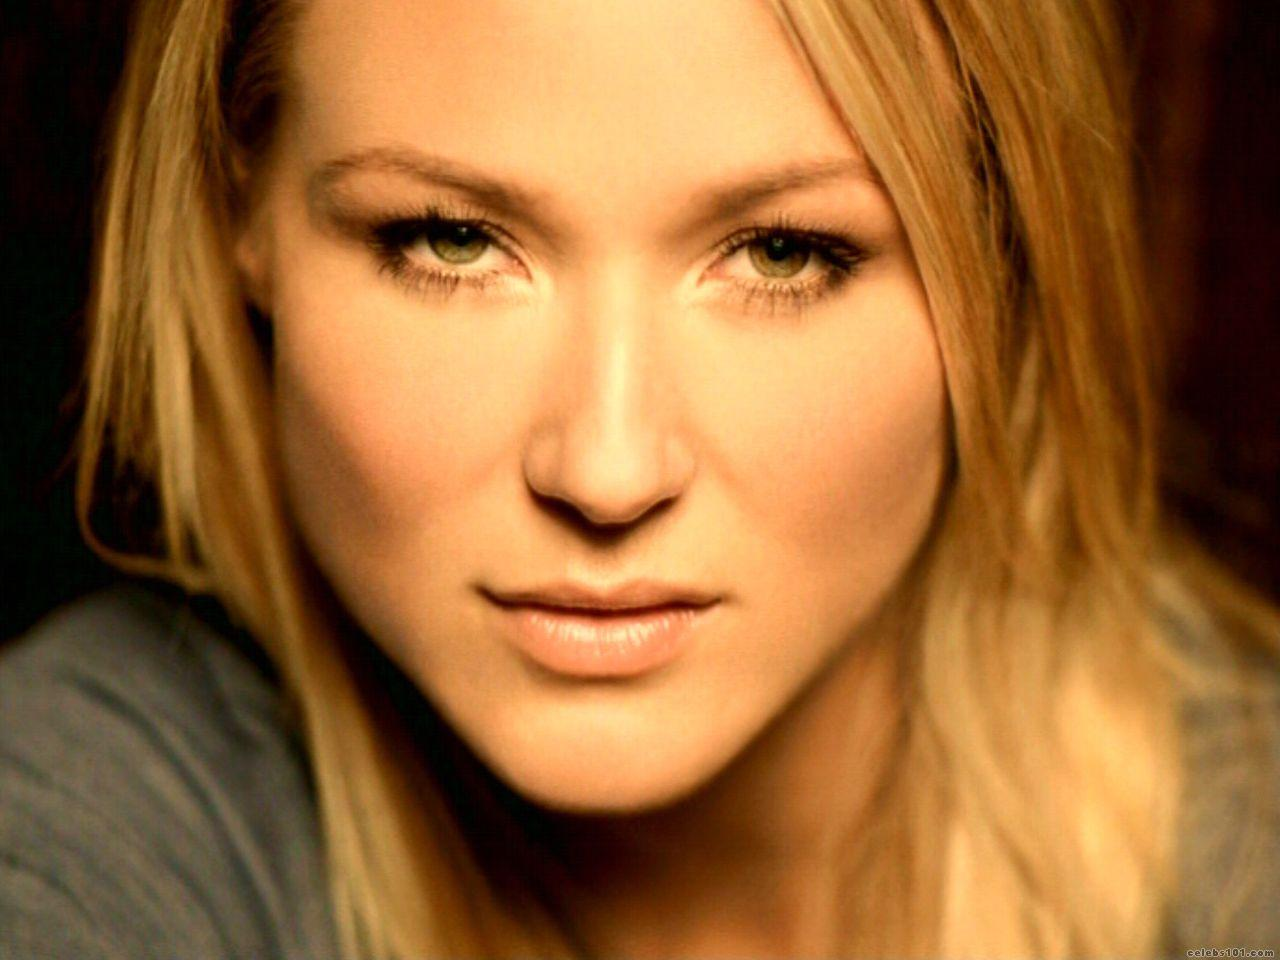 Jewel kilcher high quality wallpaper size 1280x960 of for Jewel wallpaper